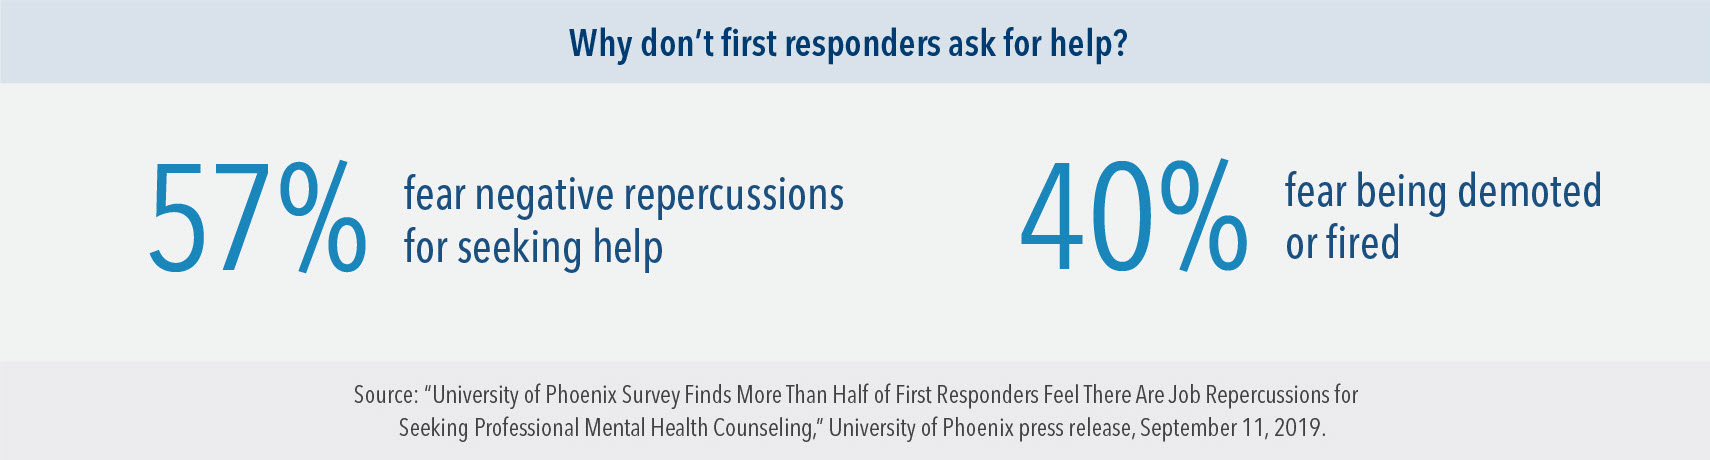 Why don't first responders ask for help? 57% fear negative repercussions for seeking help, and 40% fear being demoted or fired.